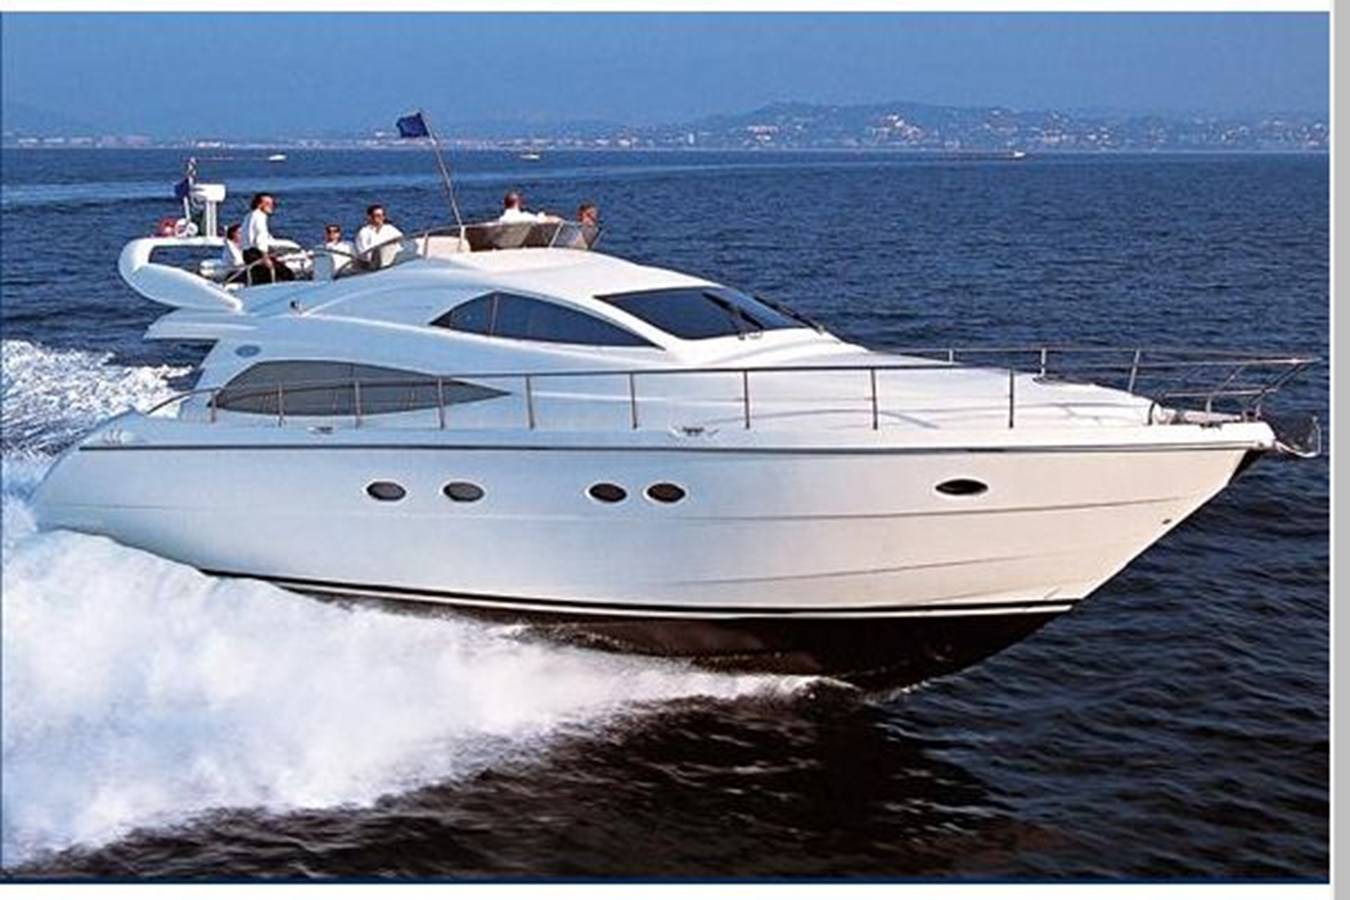 Underway without hardtop-Manufacturer Provided Image 2006 AICON YACHTS 56 Motor Yacht 2950935